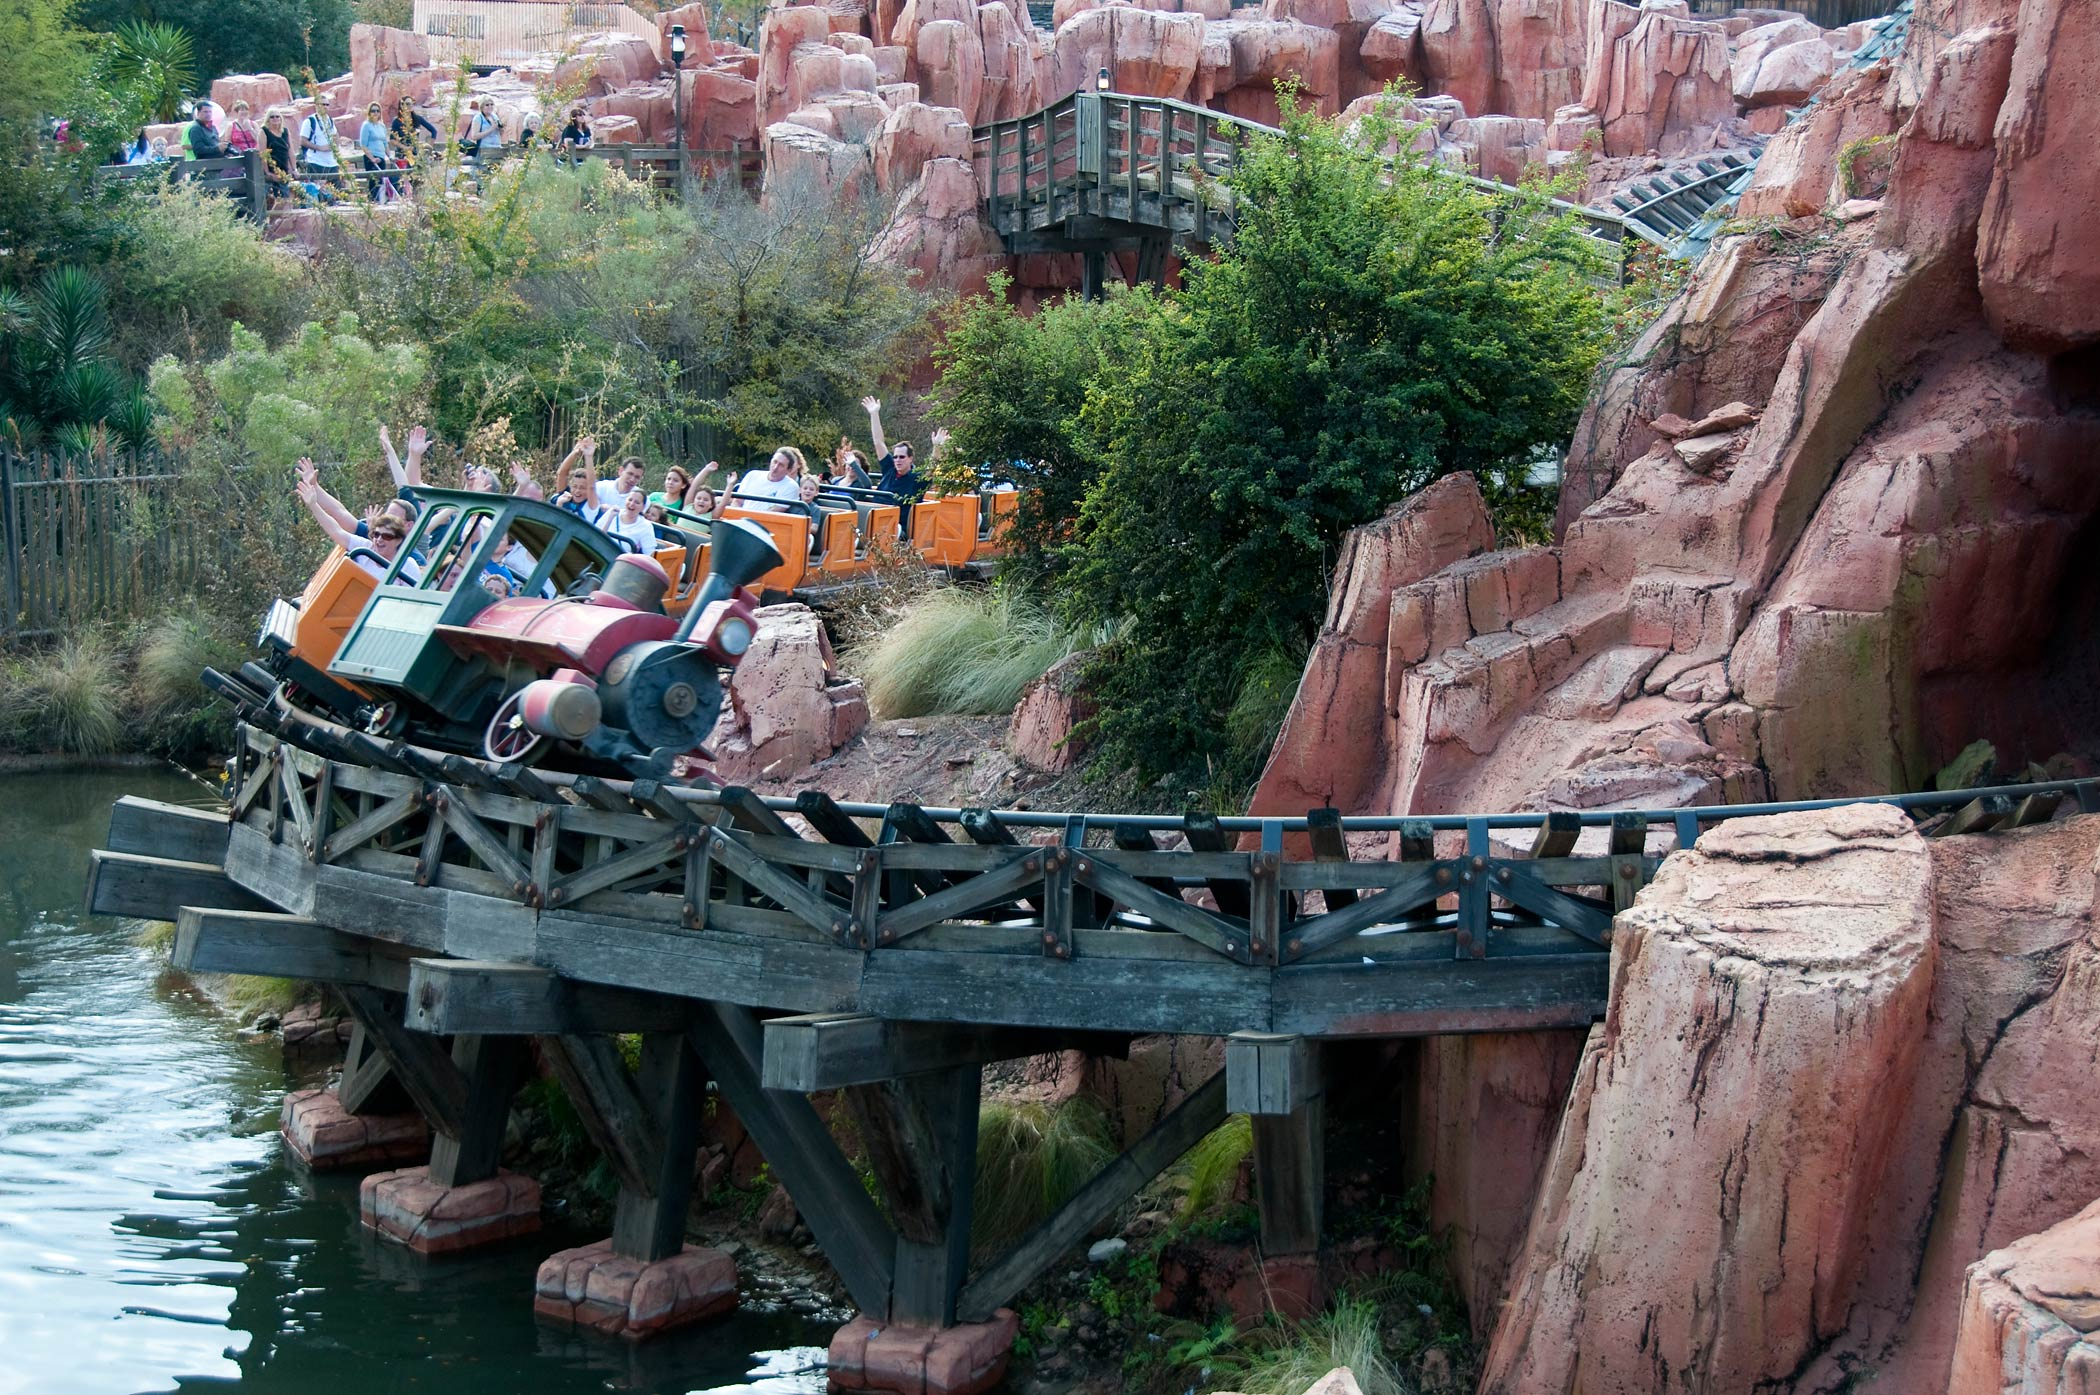 Tourists ride the Big Thunder Mountain Railroad in Disney World in Orlando, Fla.